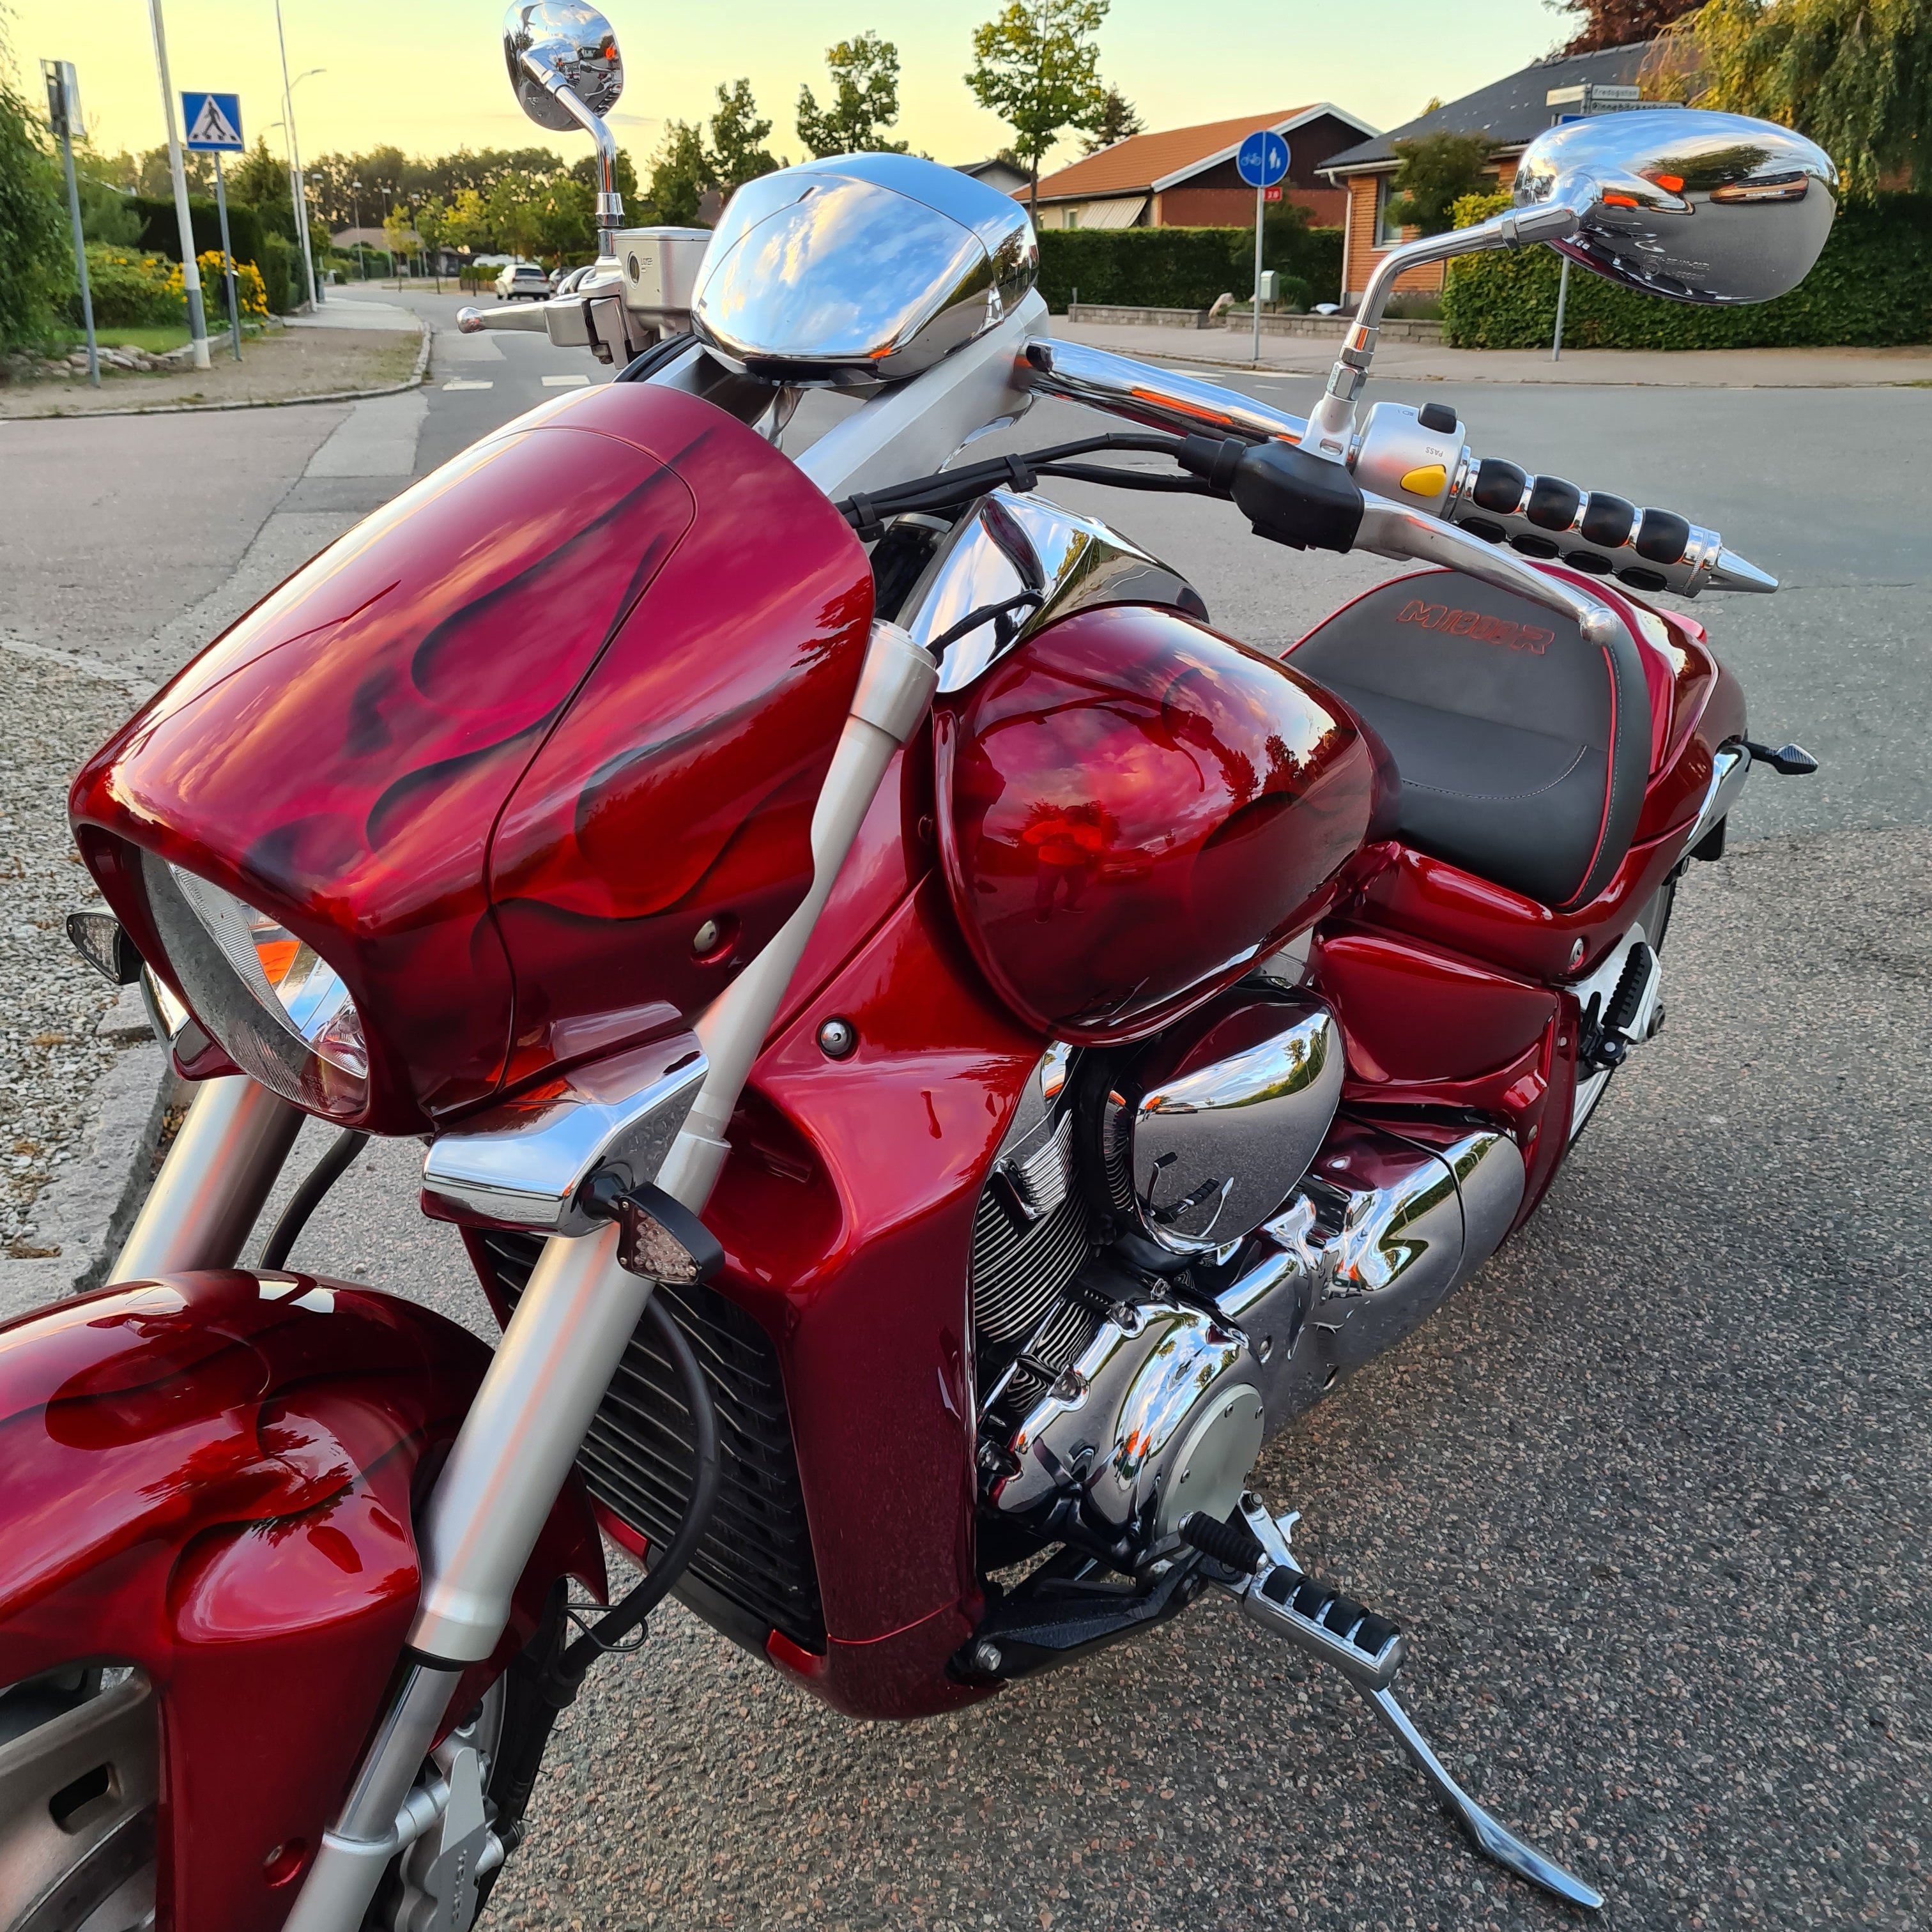 Suzuki Intruder m1800r red candy ghost classic flames 23